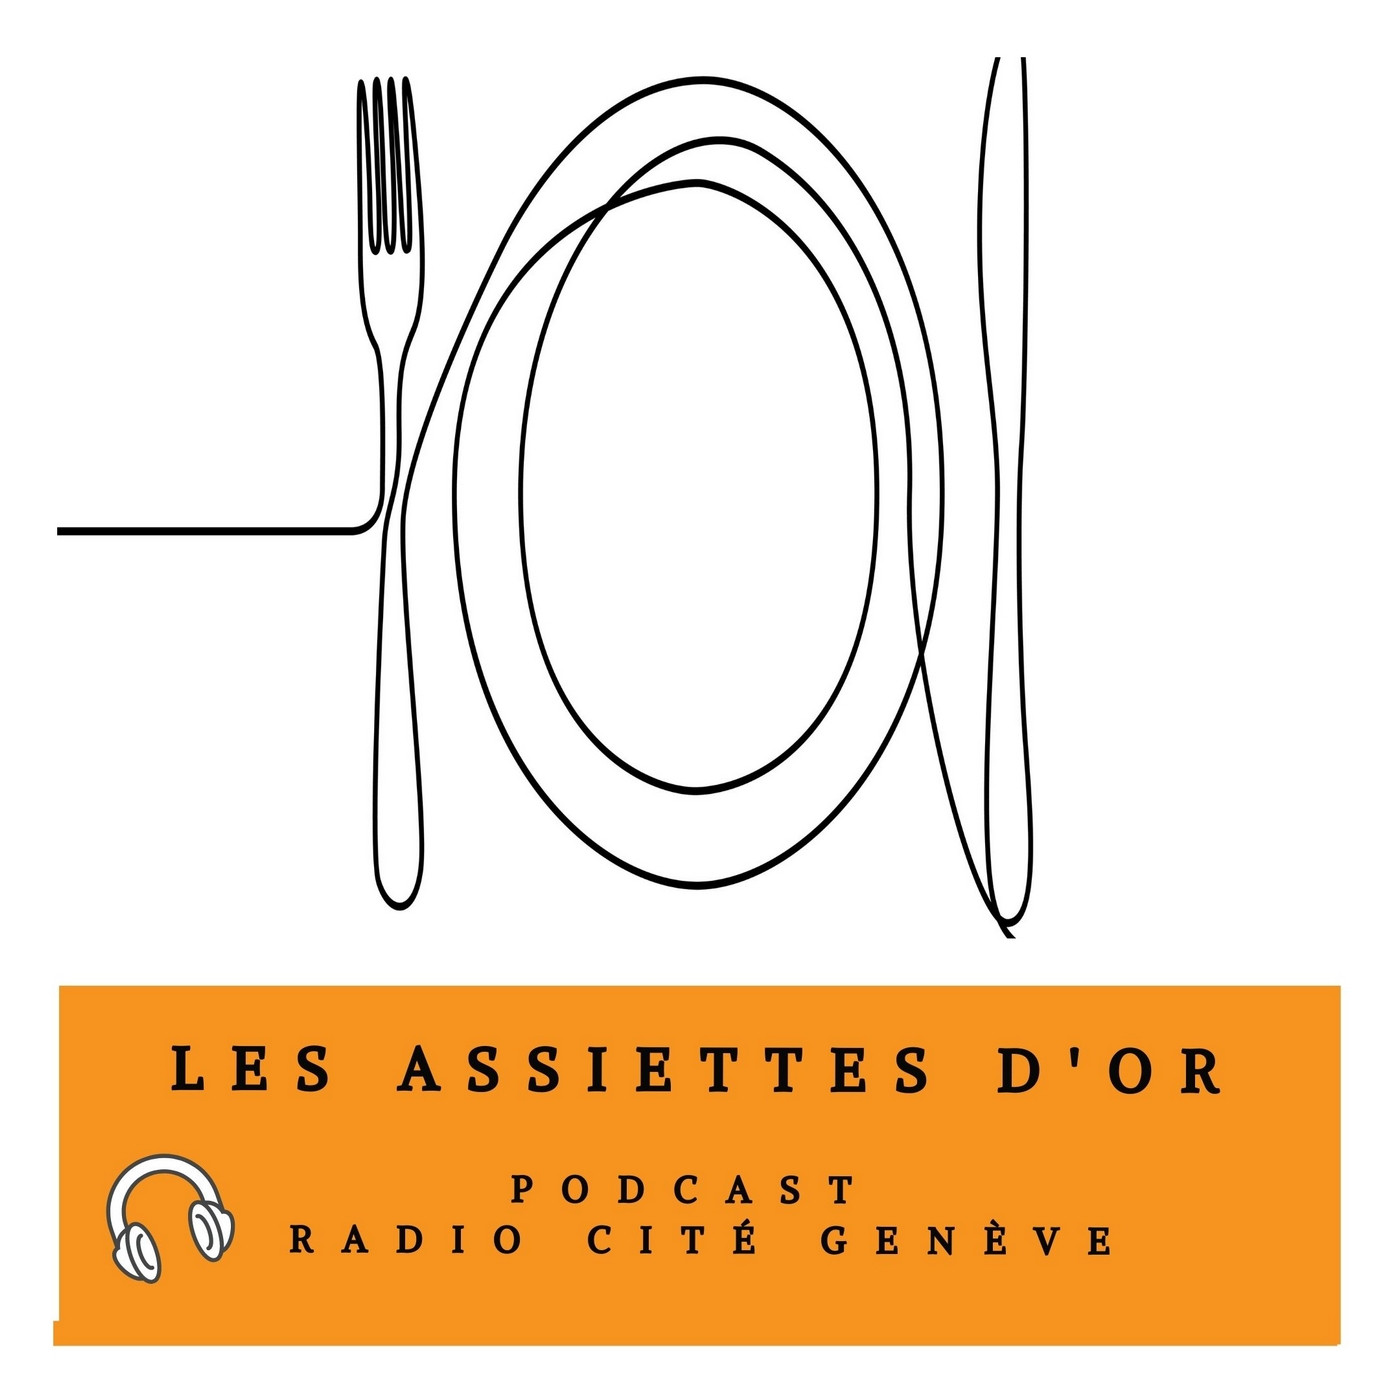 Les assiettes d'or - 14/10/20 - L'Auberge du Lion d'or Cologny